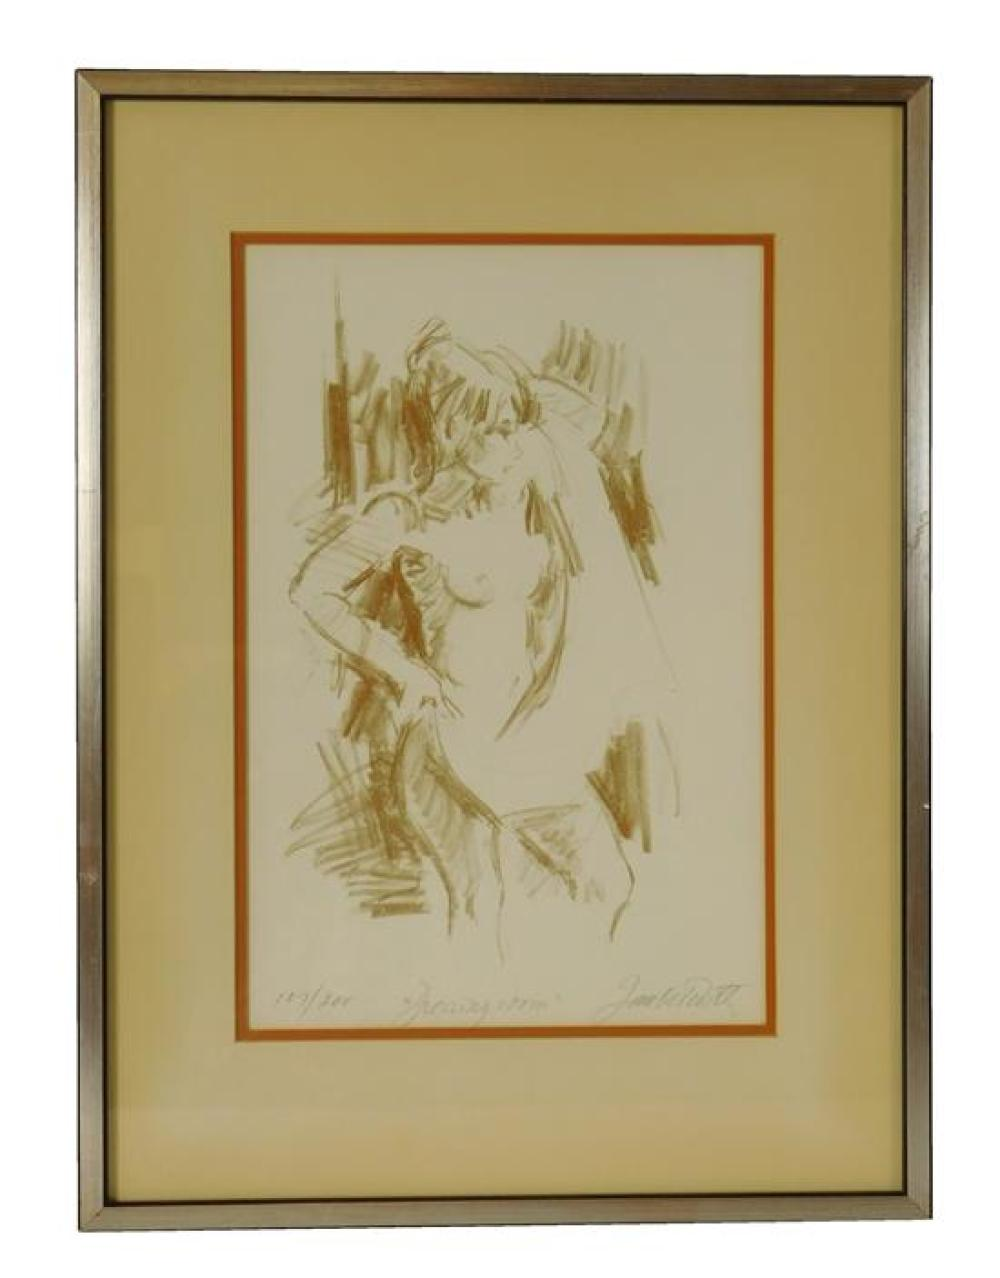 Four signed figure studies including: Ernie Barker, watercolor and pencil on paper, depicts a seated nude female in yellow accented...